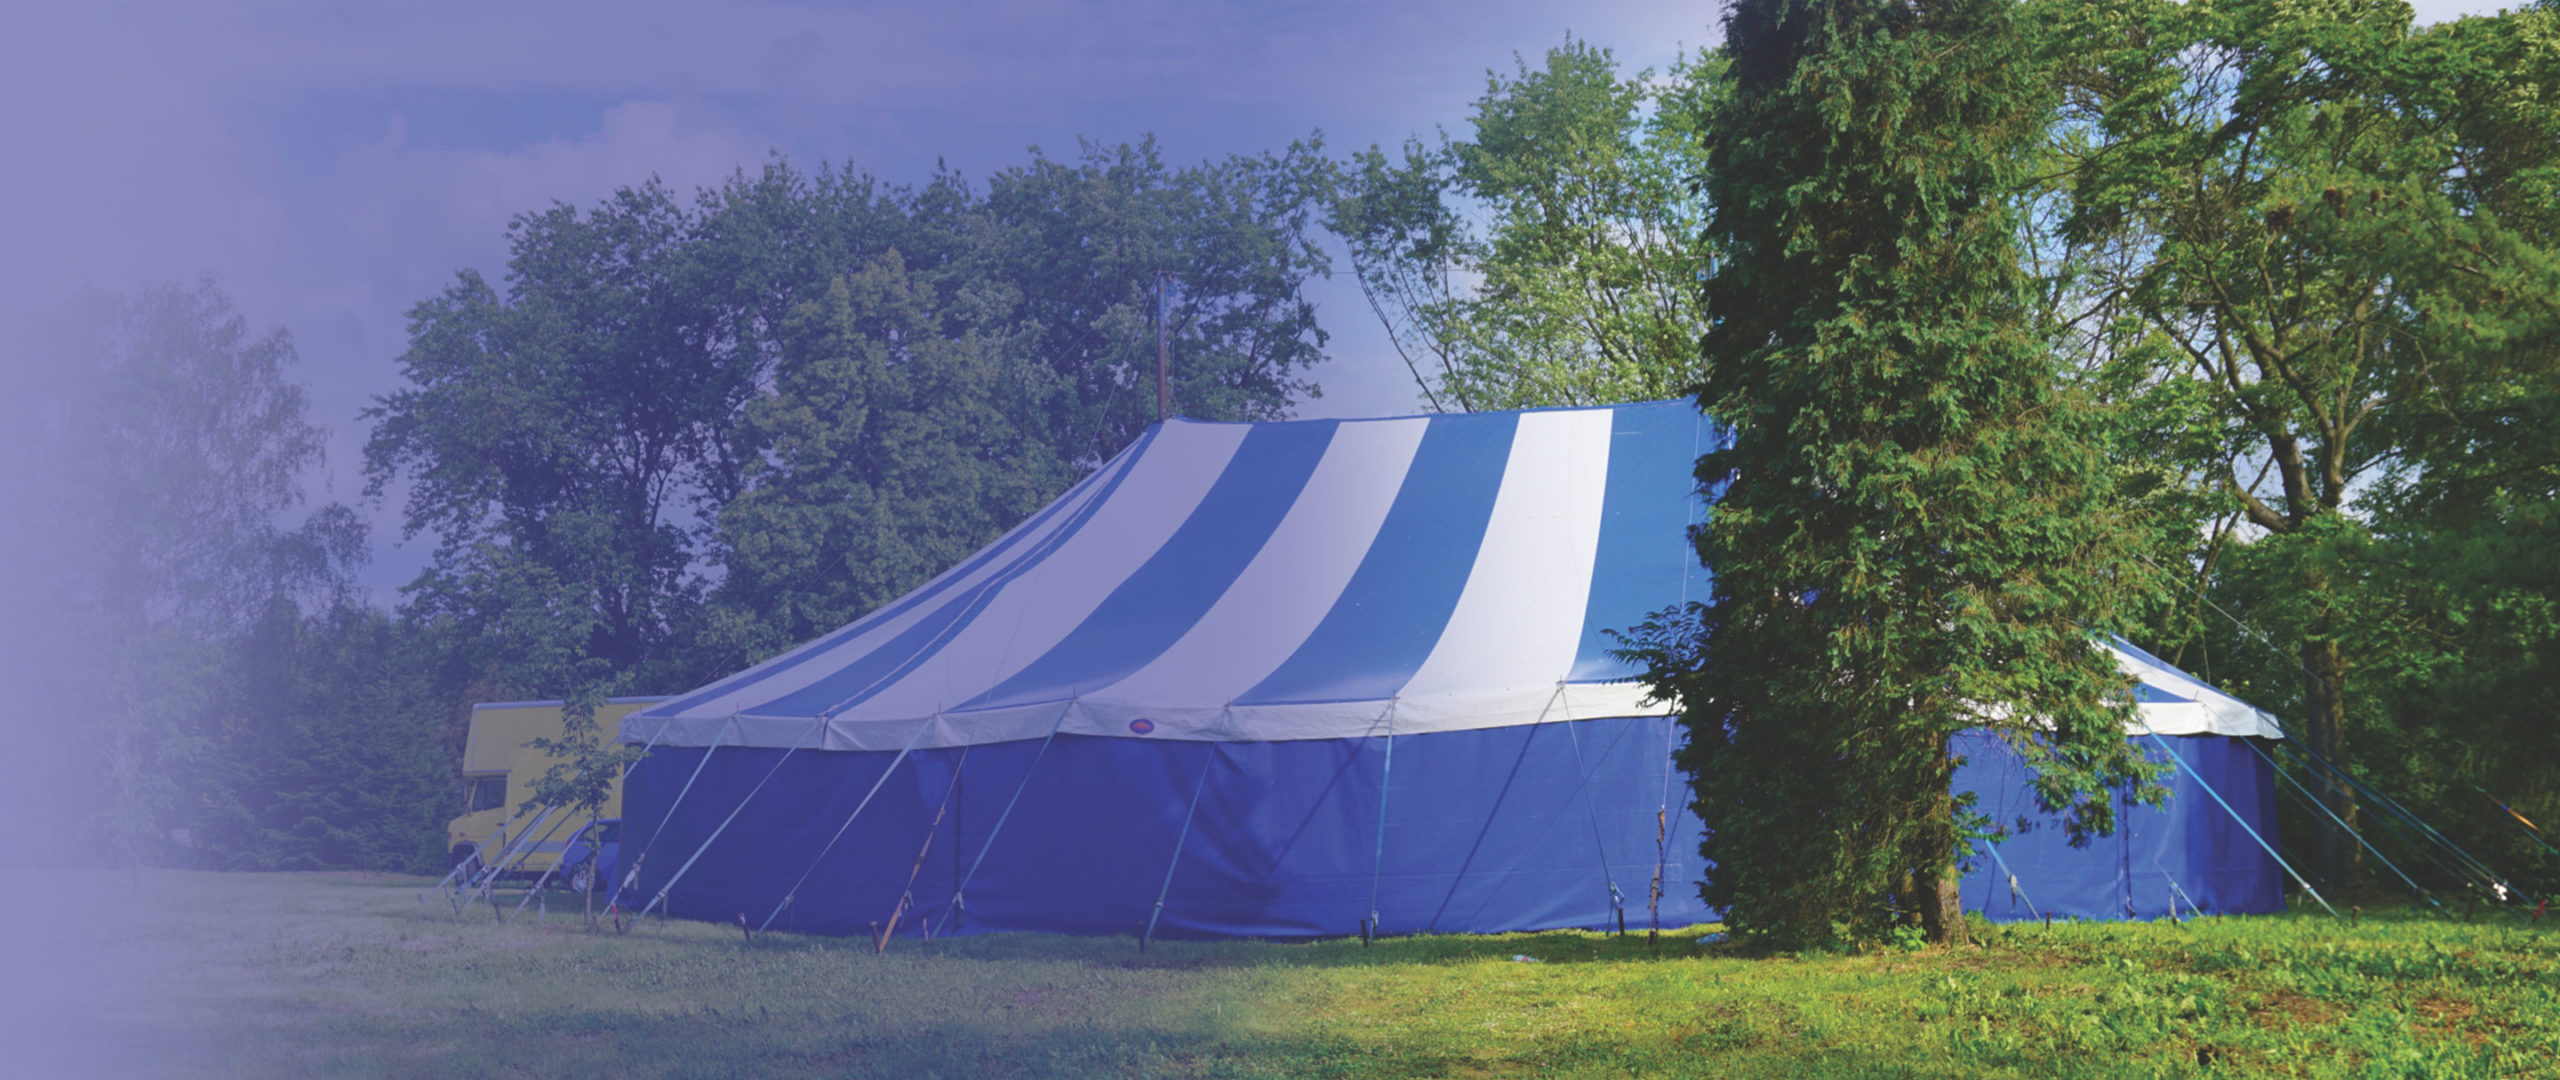 Tents and Tarpaulins